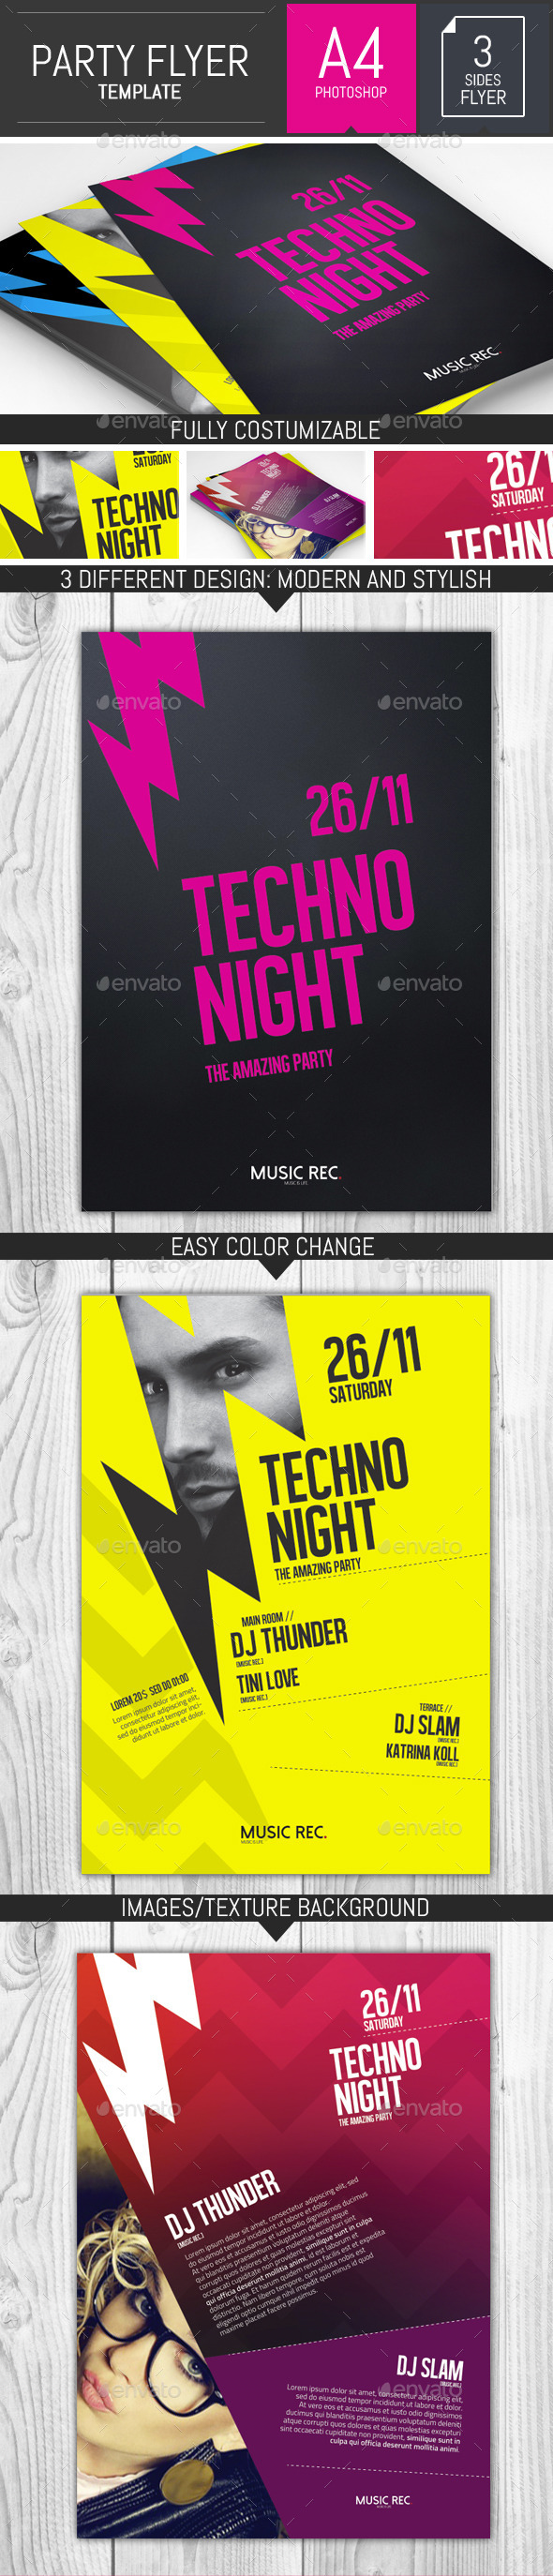 Let's Rock! Party Flyer Template - Events Flyers